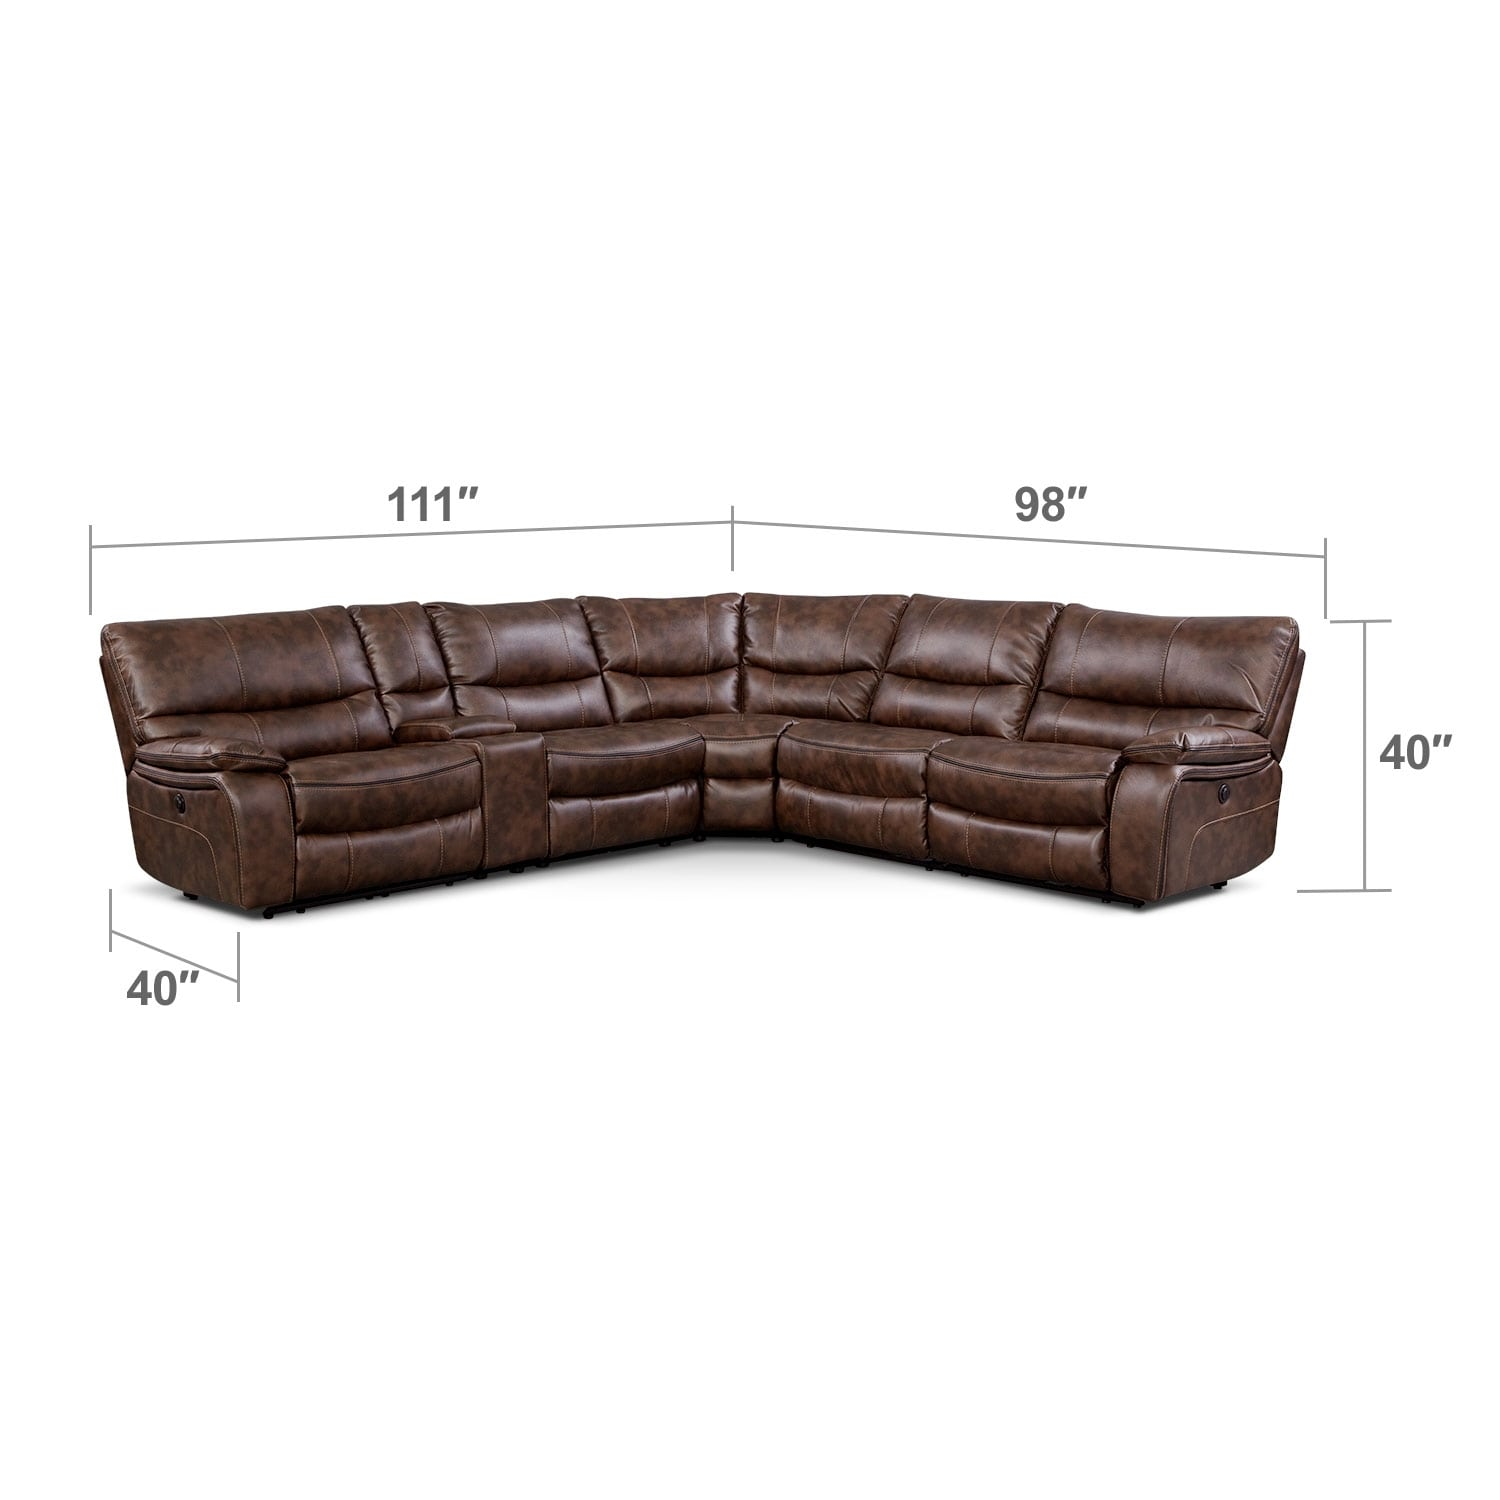 Living Room Furniture - Orlando II 6 Pc. Power Reclining Sectional